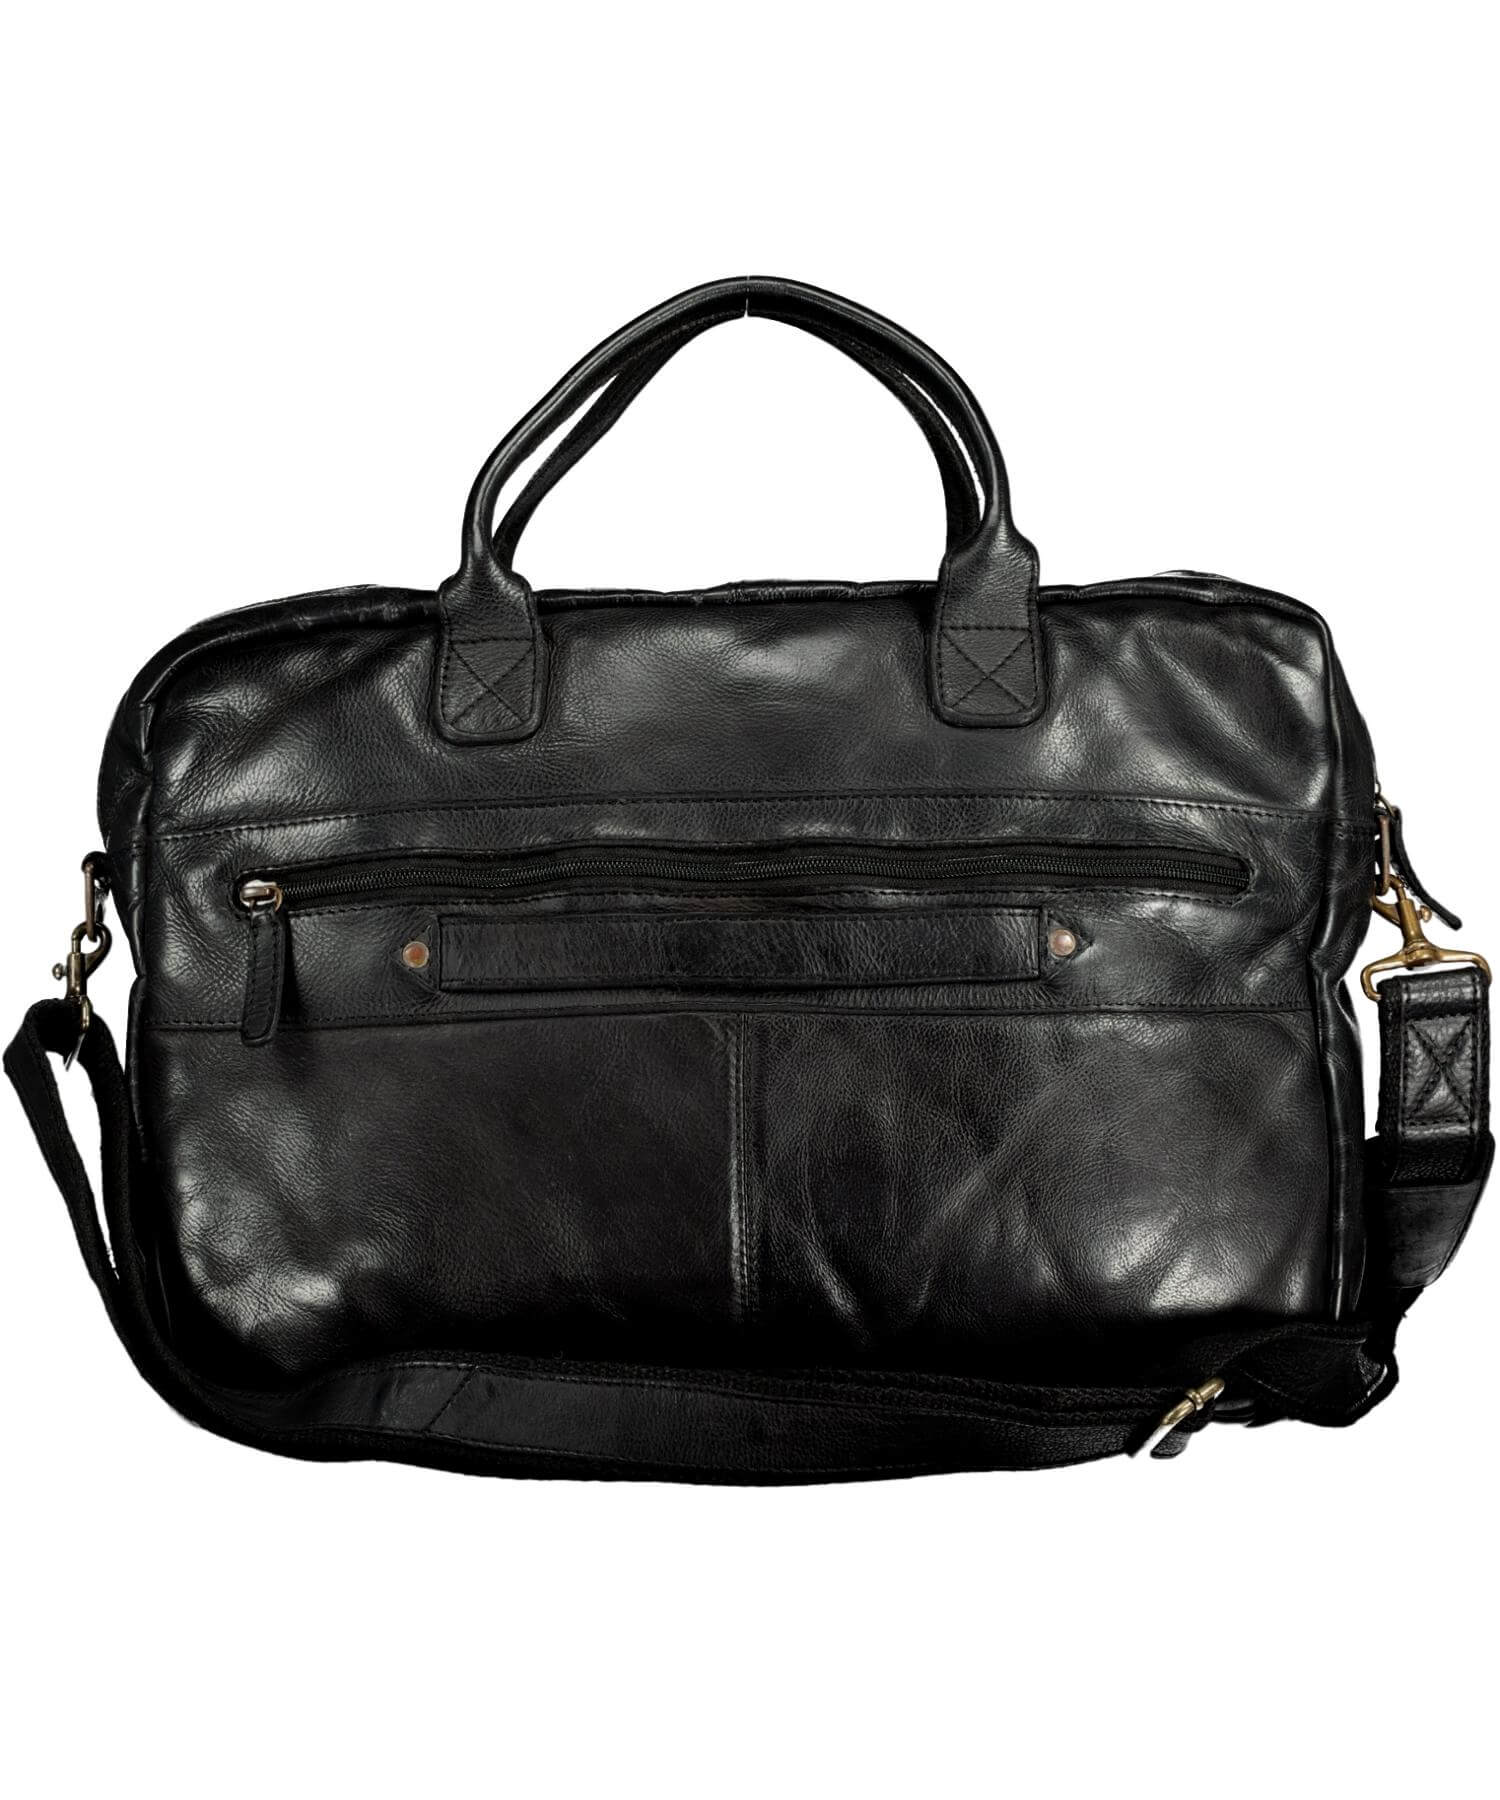 Rory Satchel - Black - [Lee River] - Bags, Purses & Wallets - Irish Gifts